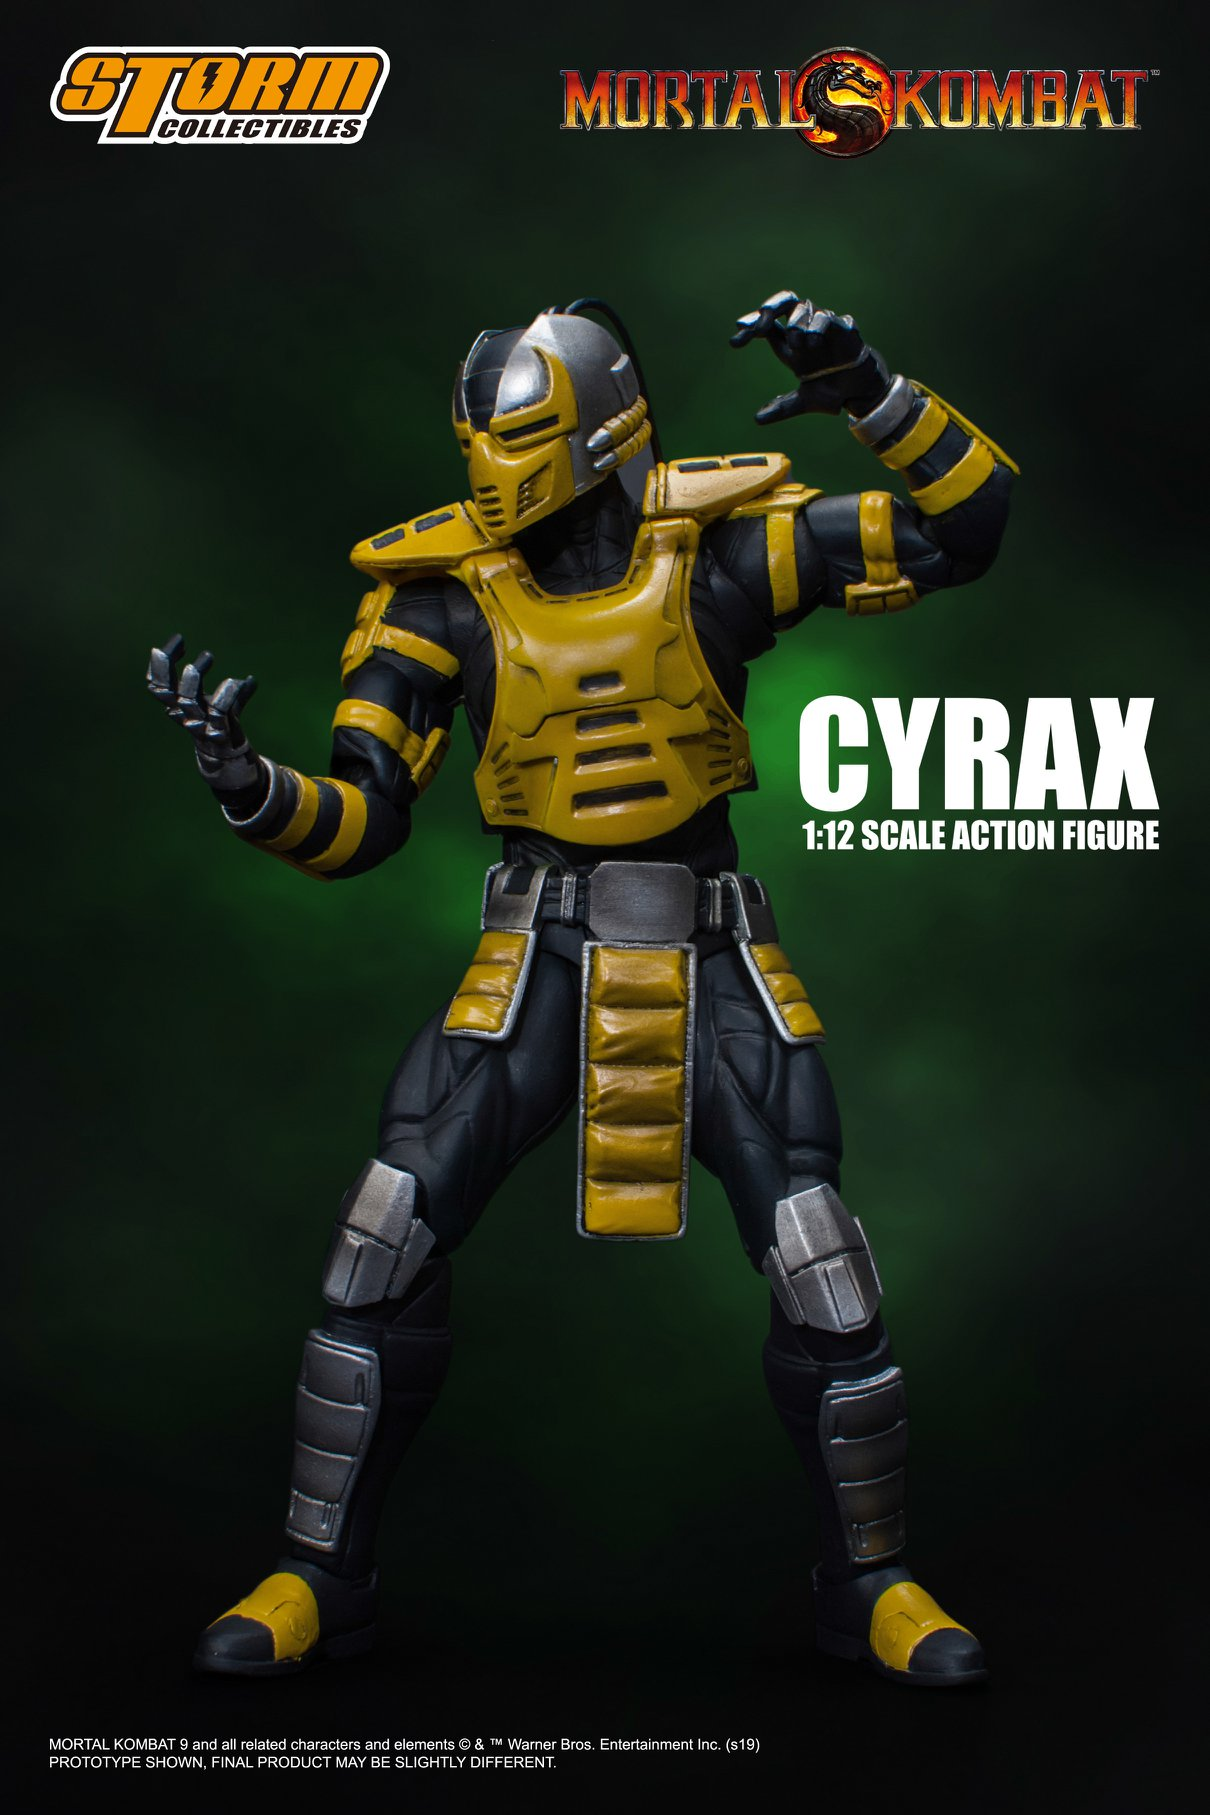 Mortal Kombat - Cyrax 1:12 Action Figure